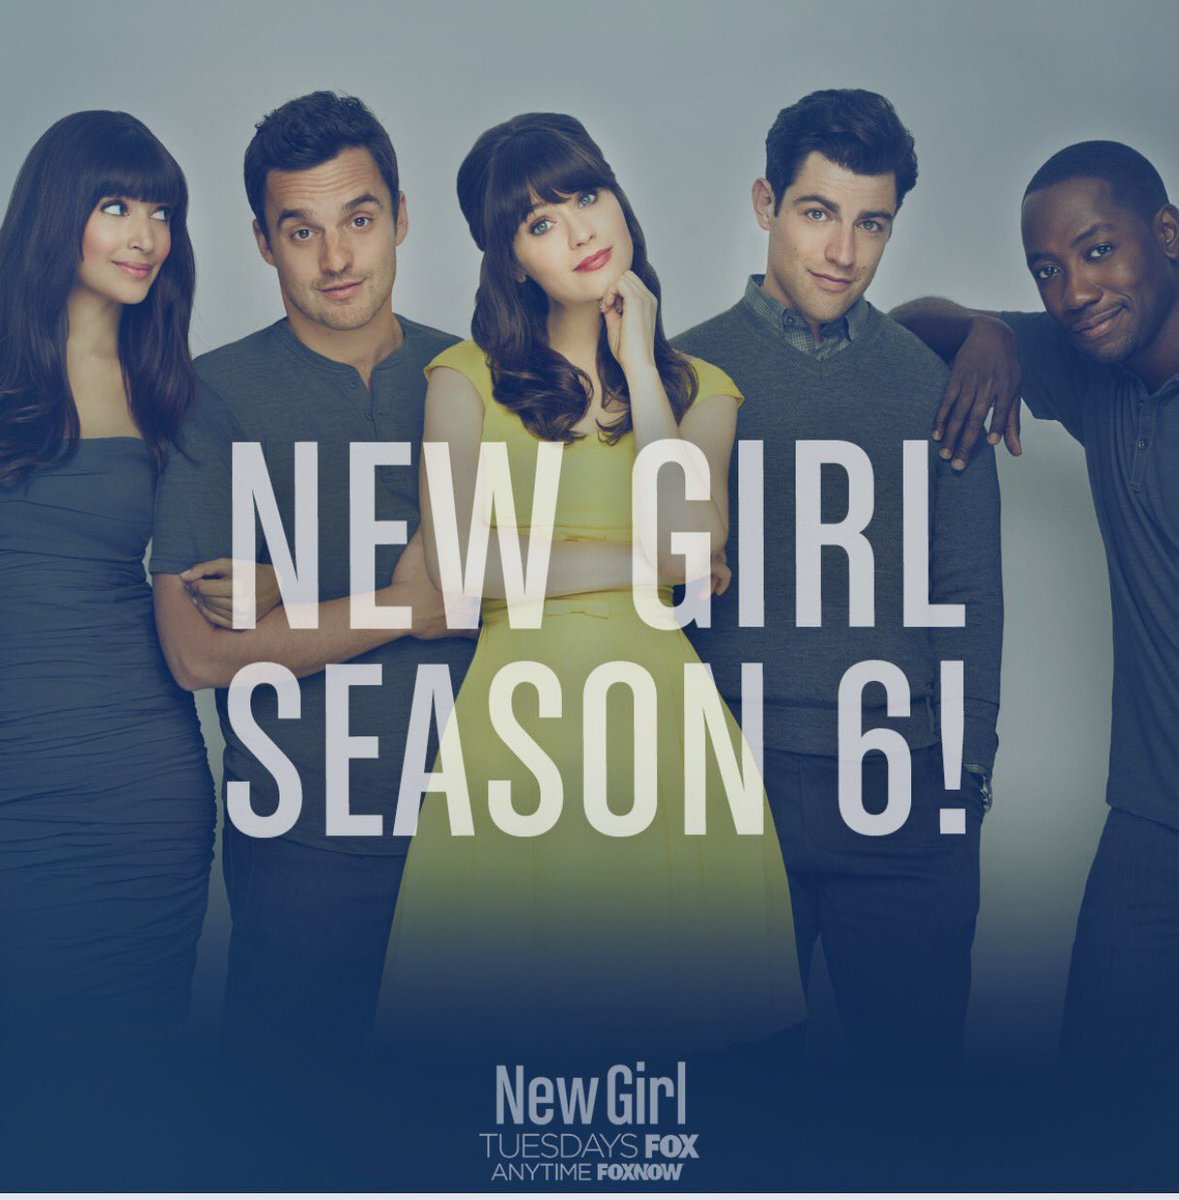 It's official! #NewGirl is coming back for season 6! https://t.co/Qtv3wYHqHu